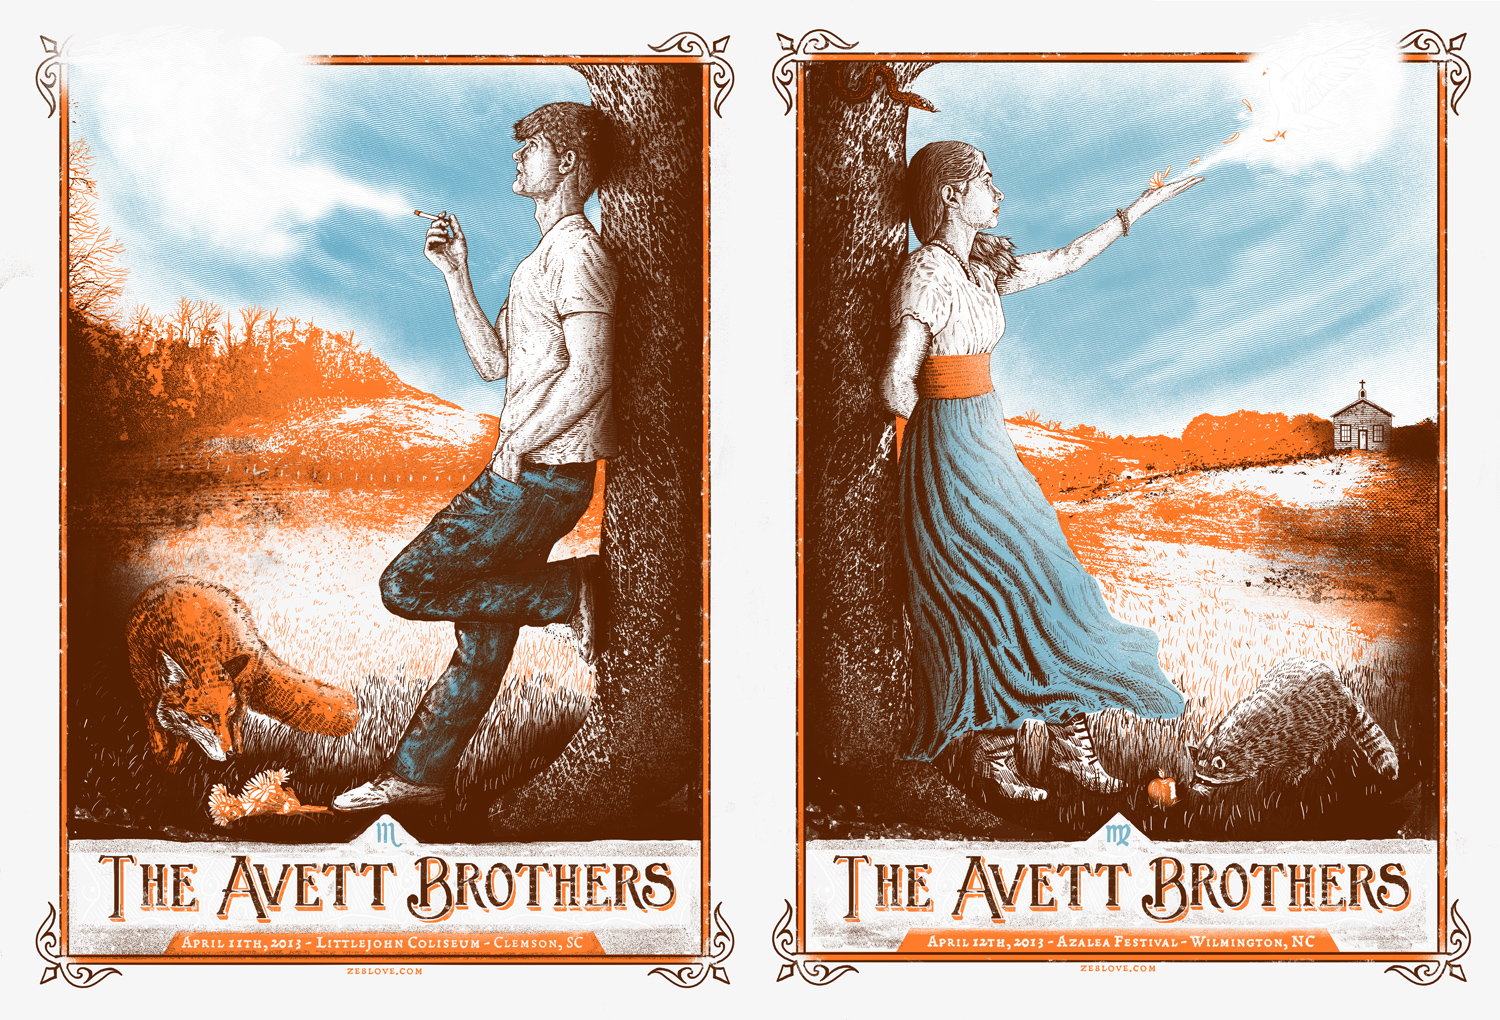 love the avett brothers Clemson, SC & Wilmington, NC 2013 variant